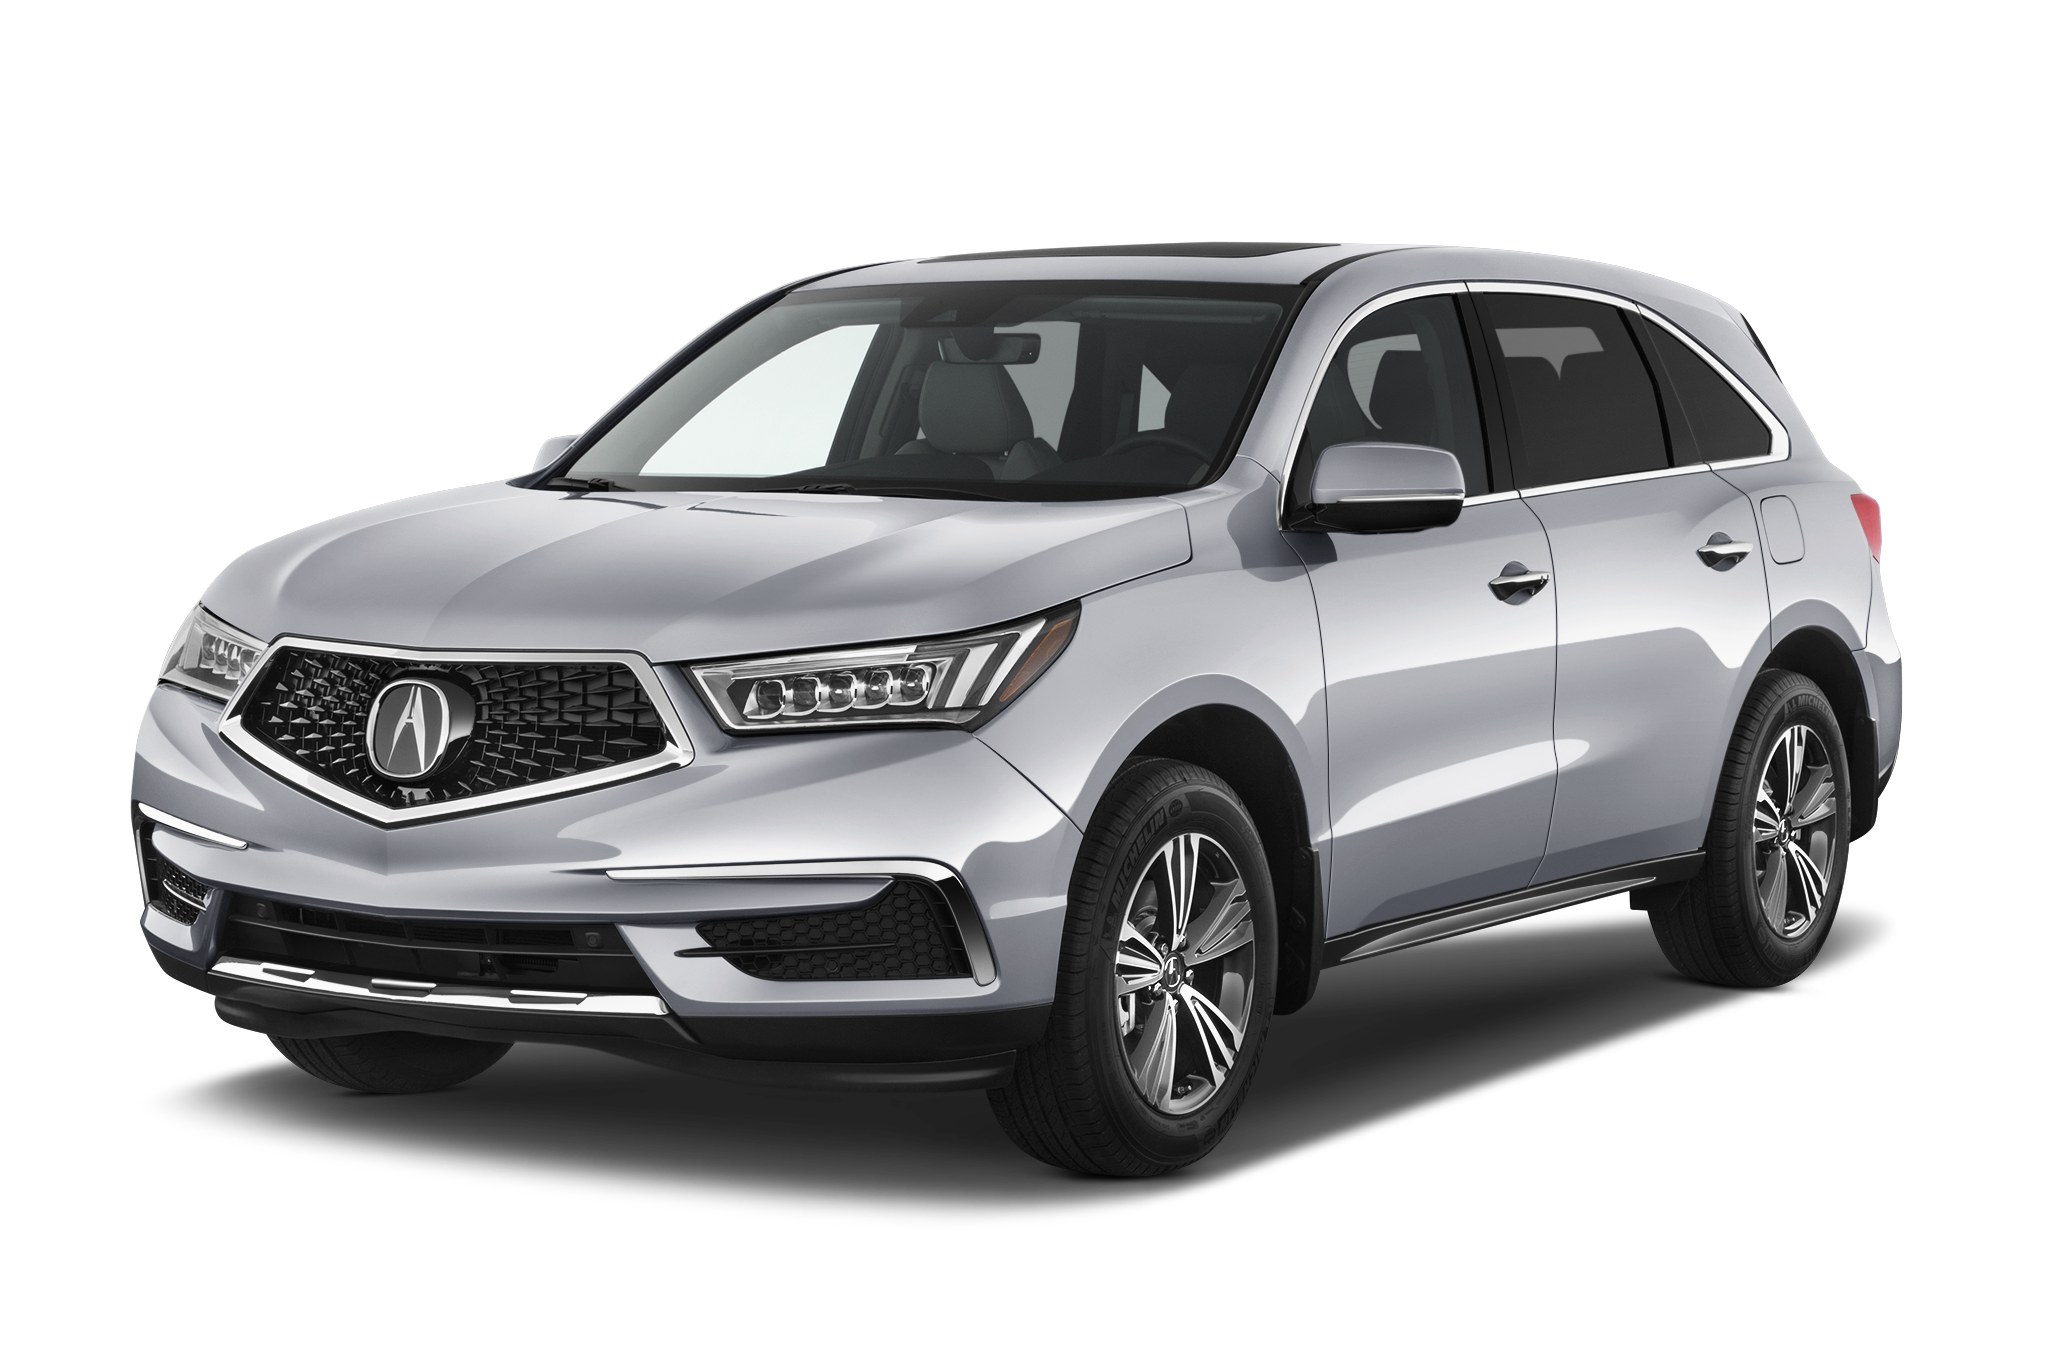 White Suv PNG - 57823